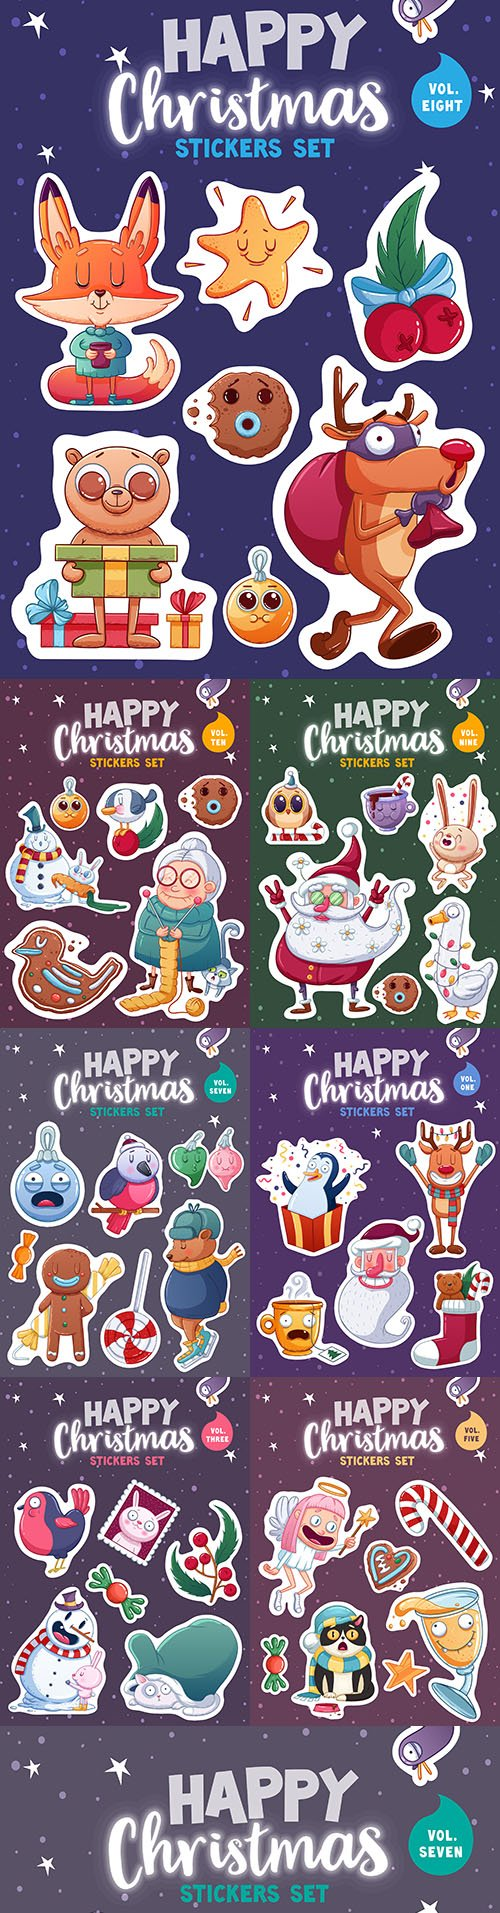 Merry Christmas set stickers or magnets festive souvenirs 2